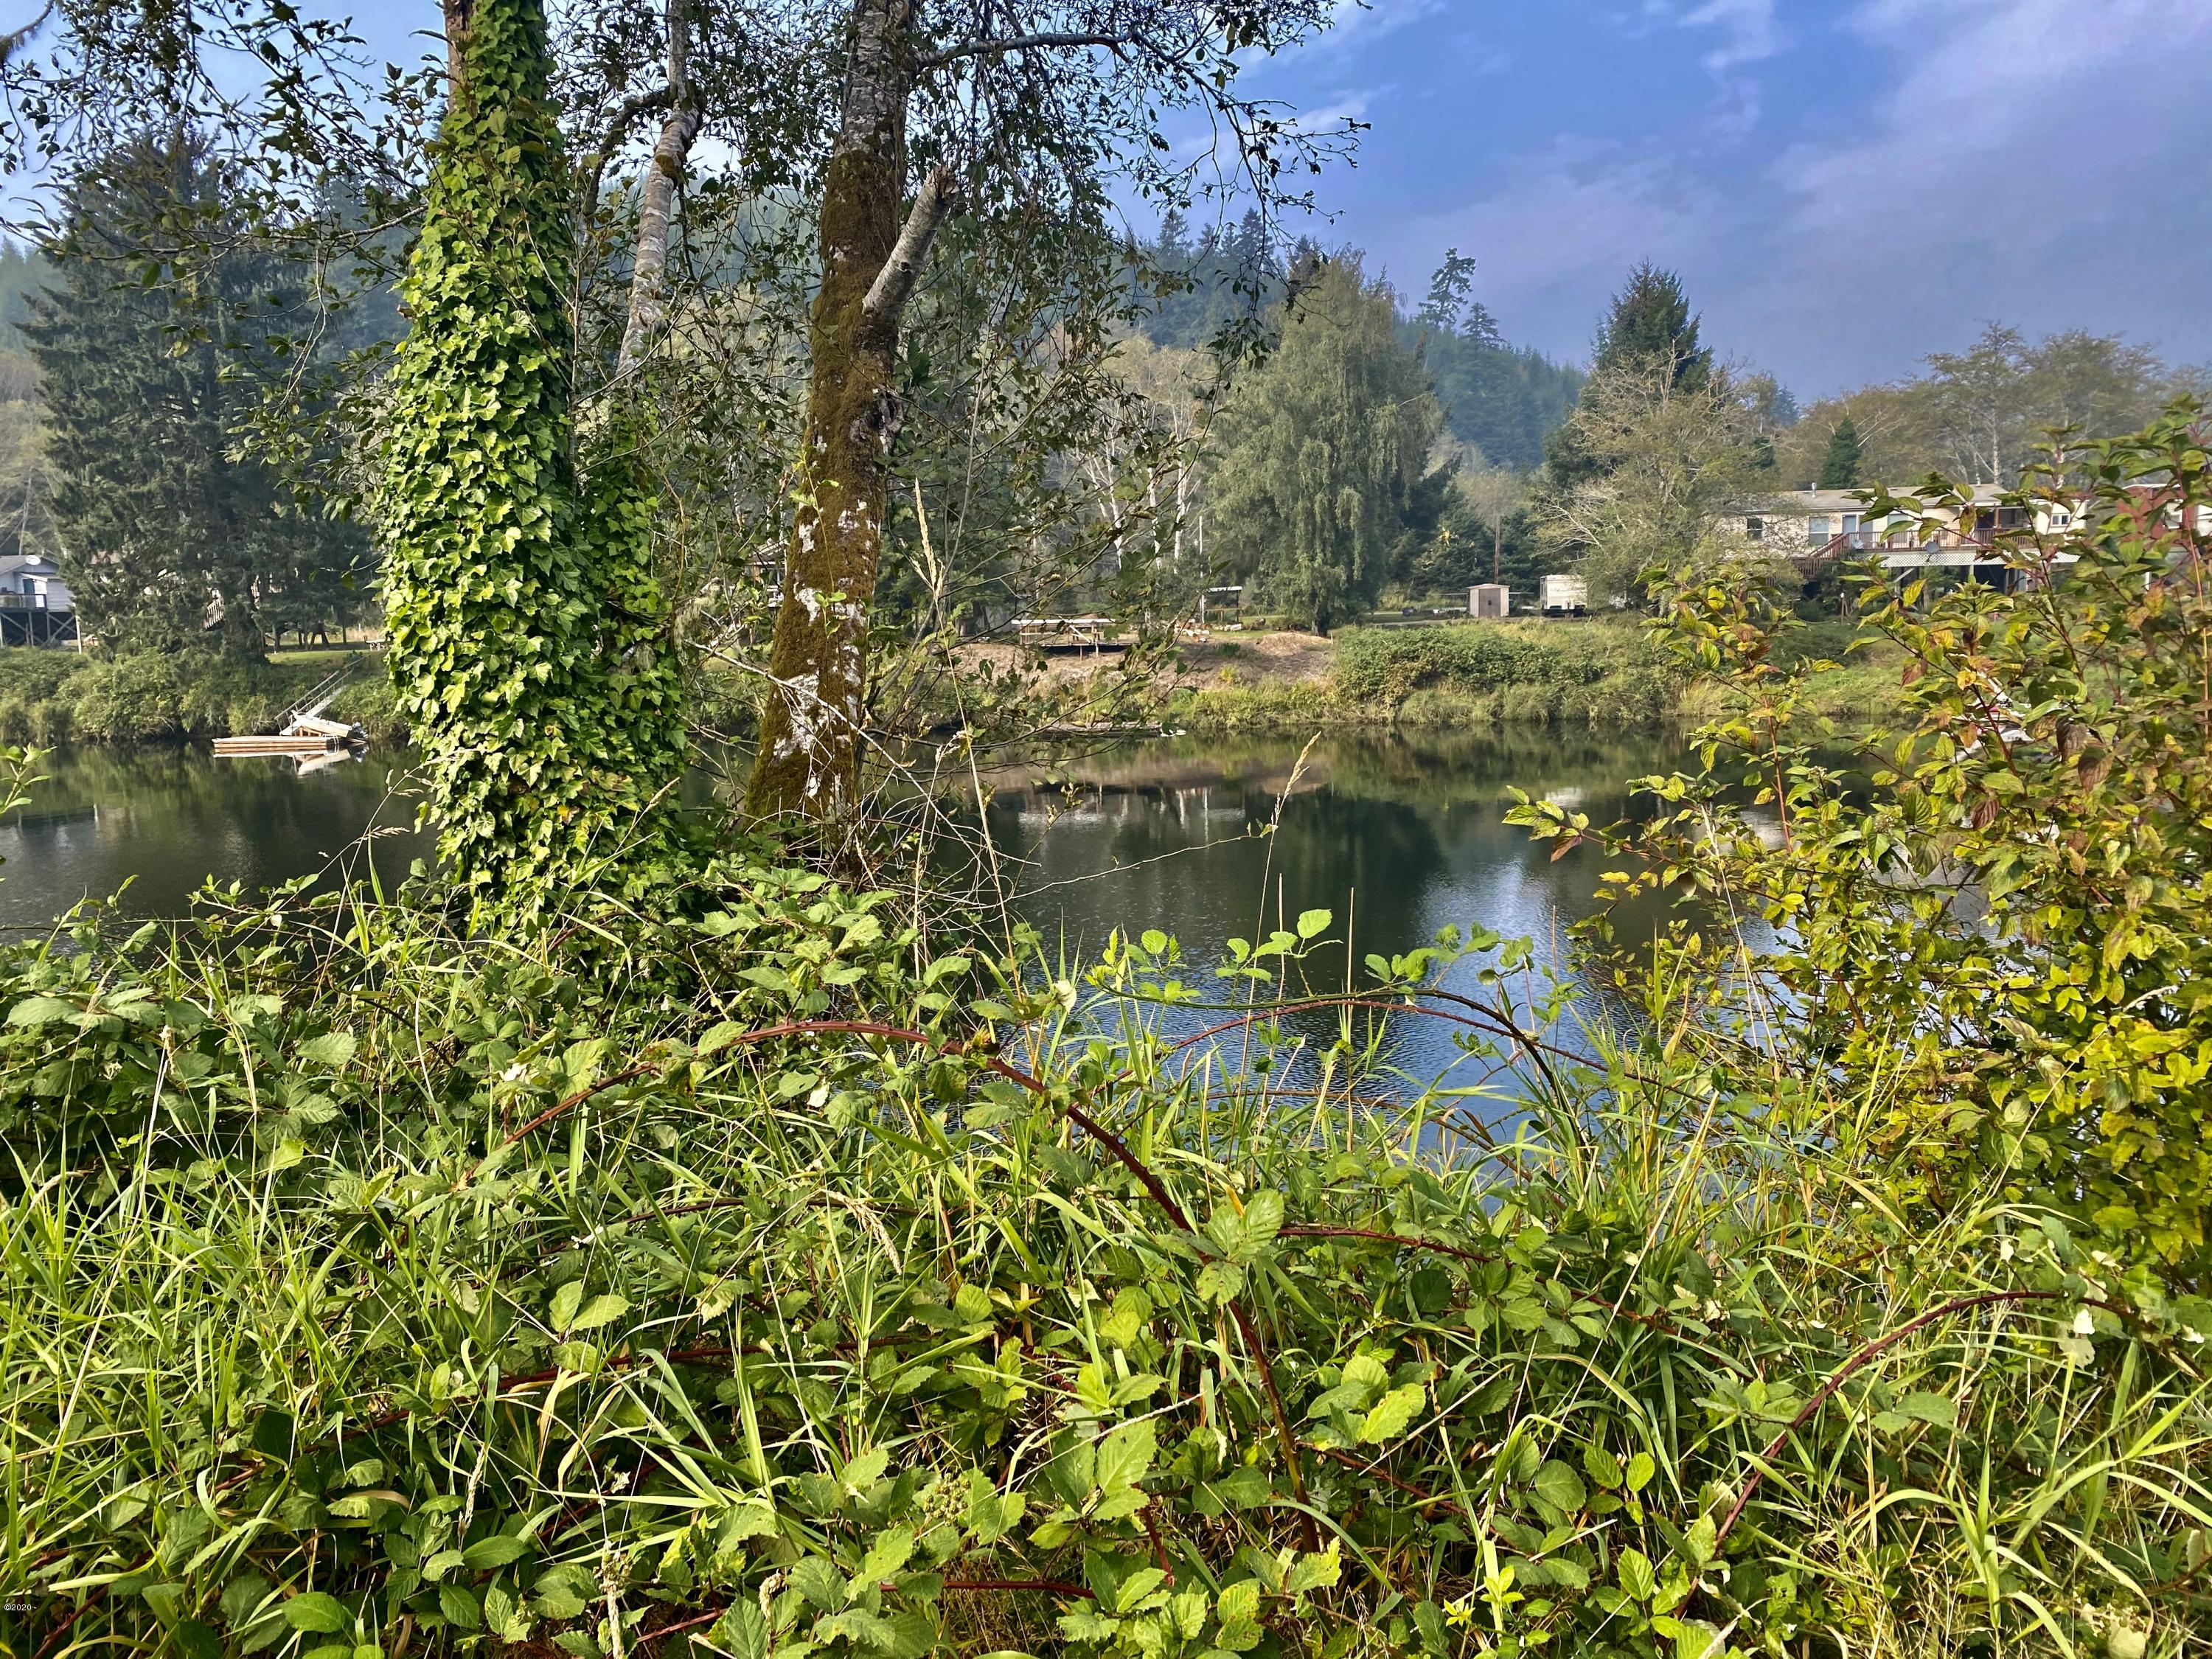 8072 S. Siletz River Dr, Lincoln City, OR 97367 - River front